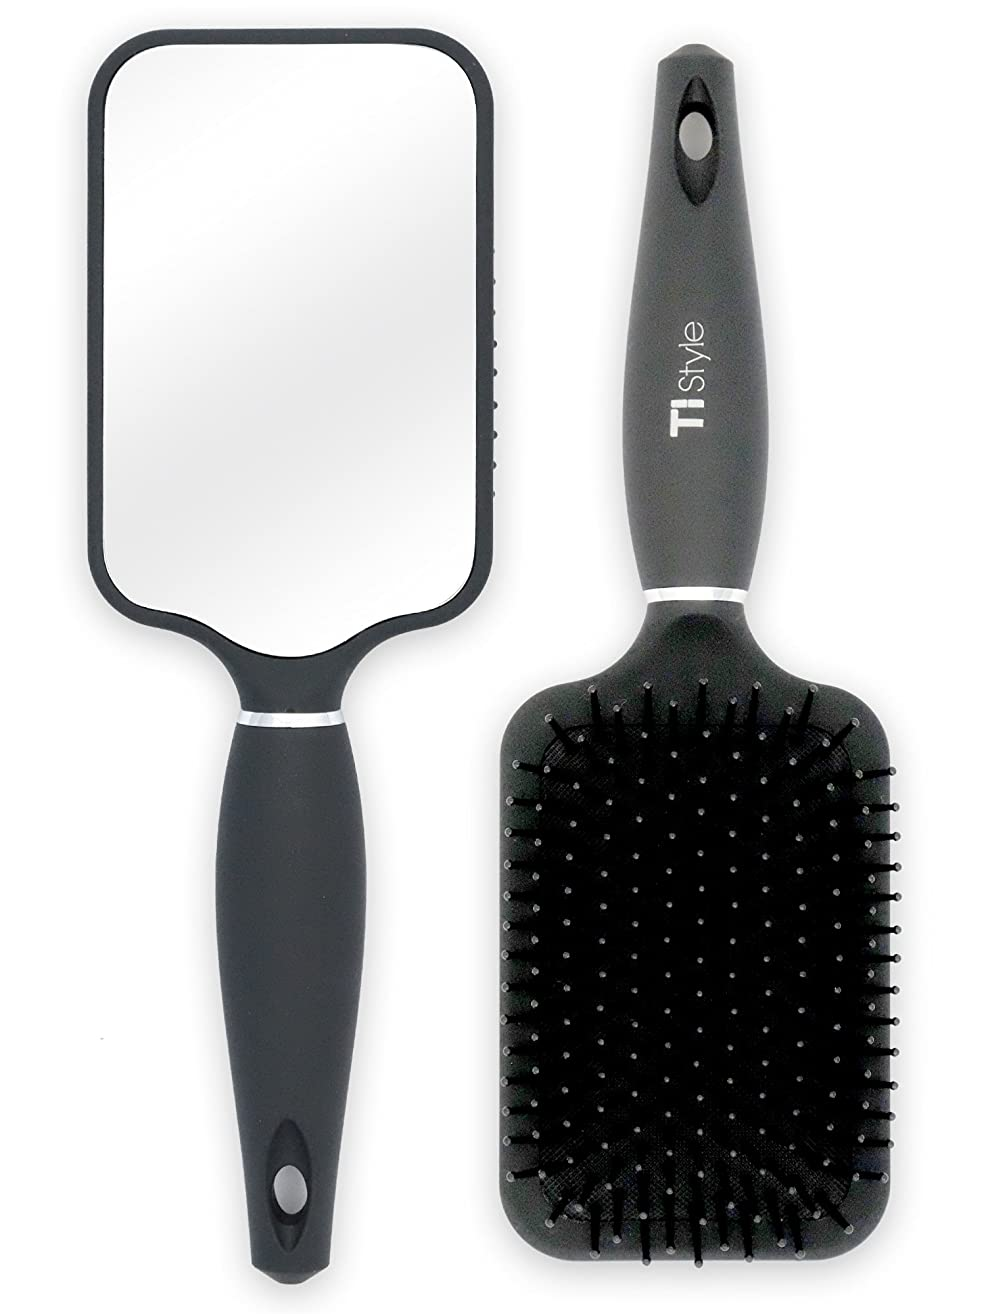 Paddle Hair Brush with Large Mirror - Ideal for Blow-Drying, Detangling, Straighten, Comb All Hair Types (Black Color)